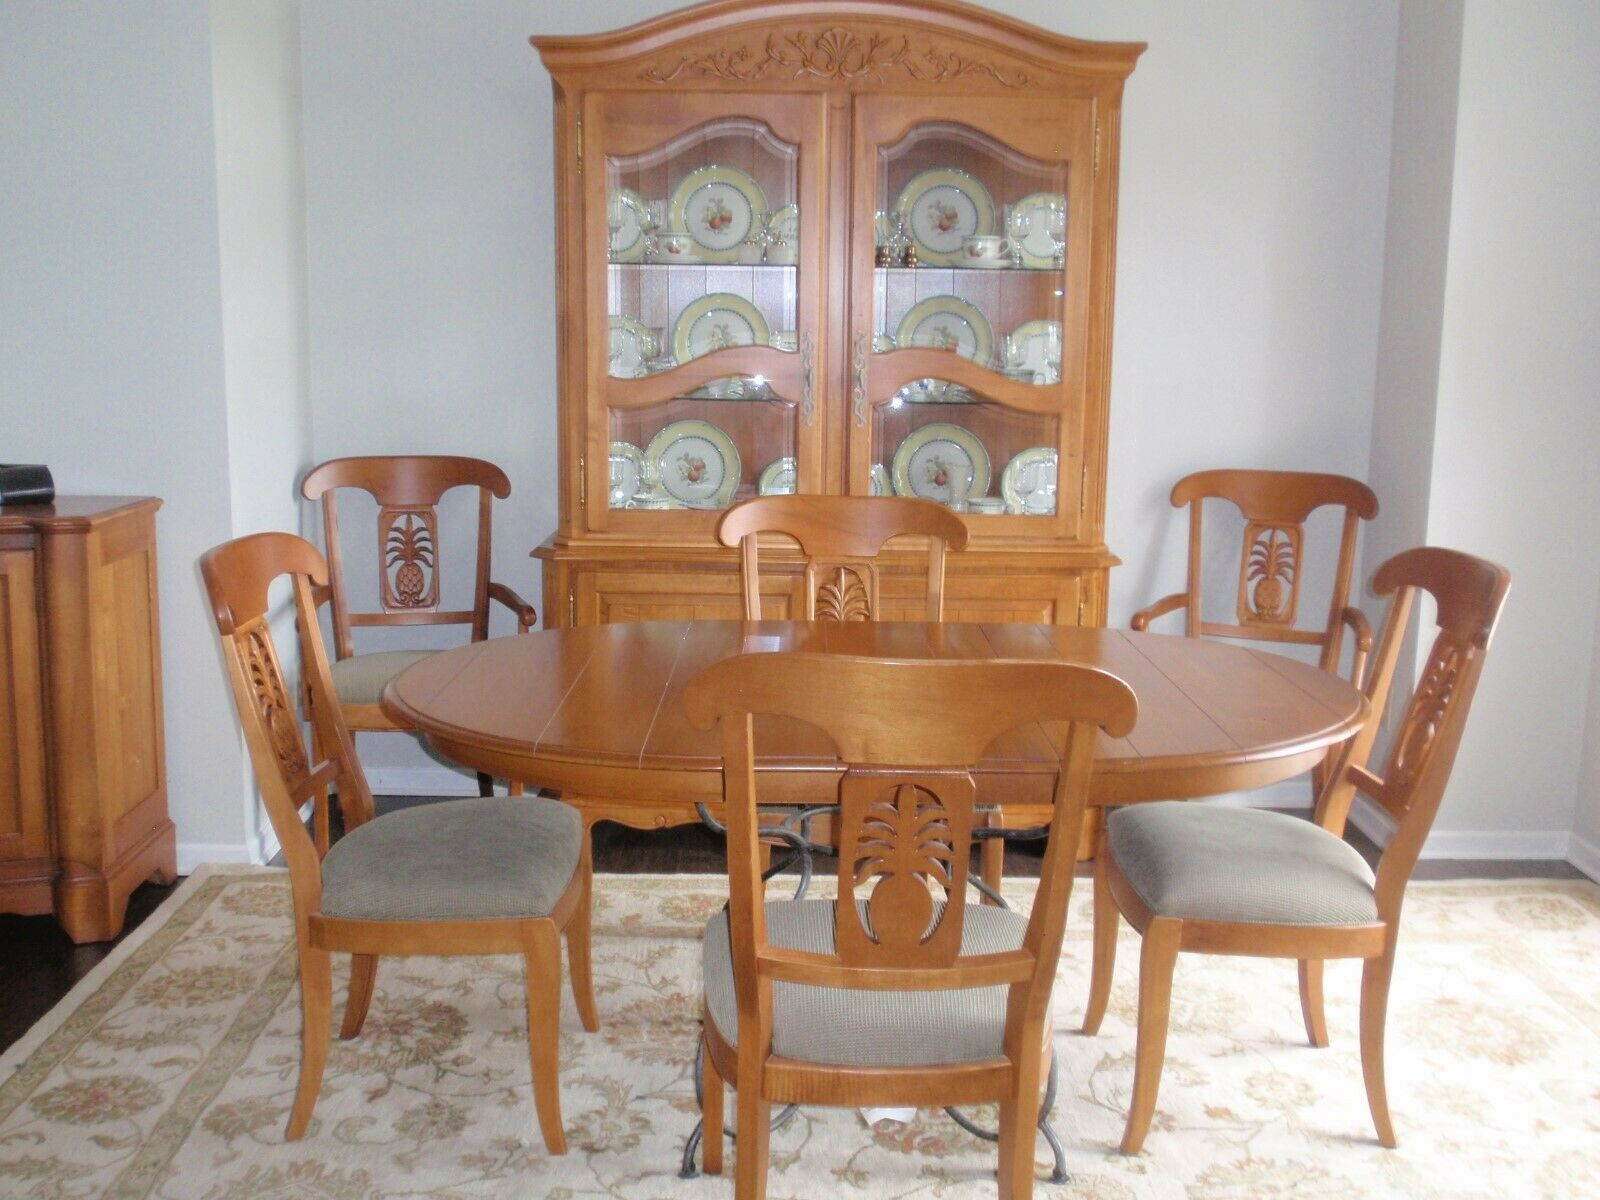 Ethan Allen Legacy Collection Dining Room Set ( table, chairs, hutch,  buffet)